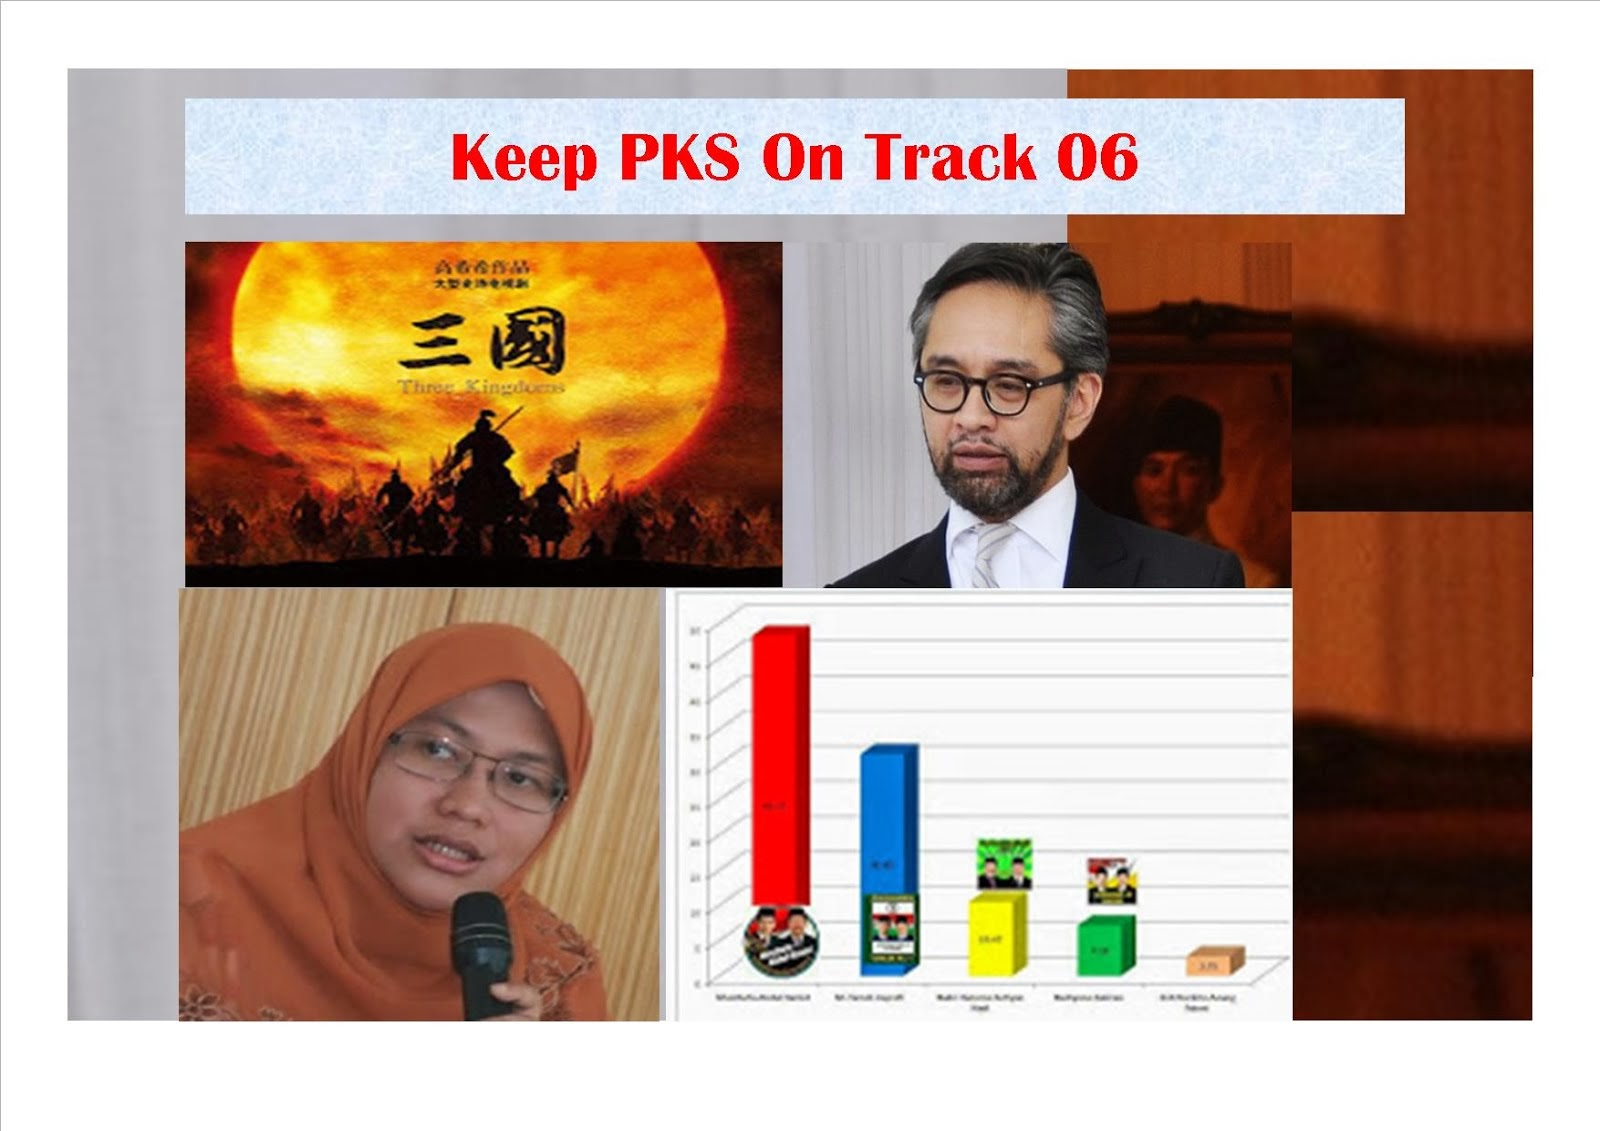 Keep PKS on Track 06